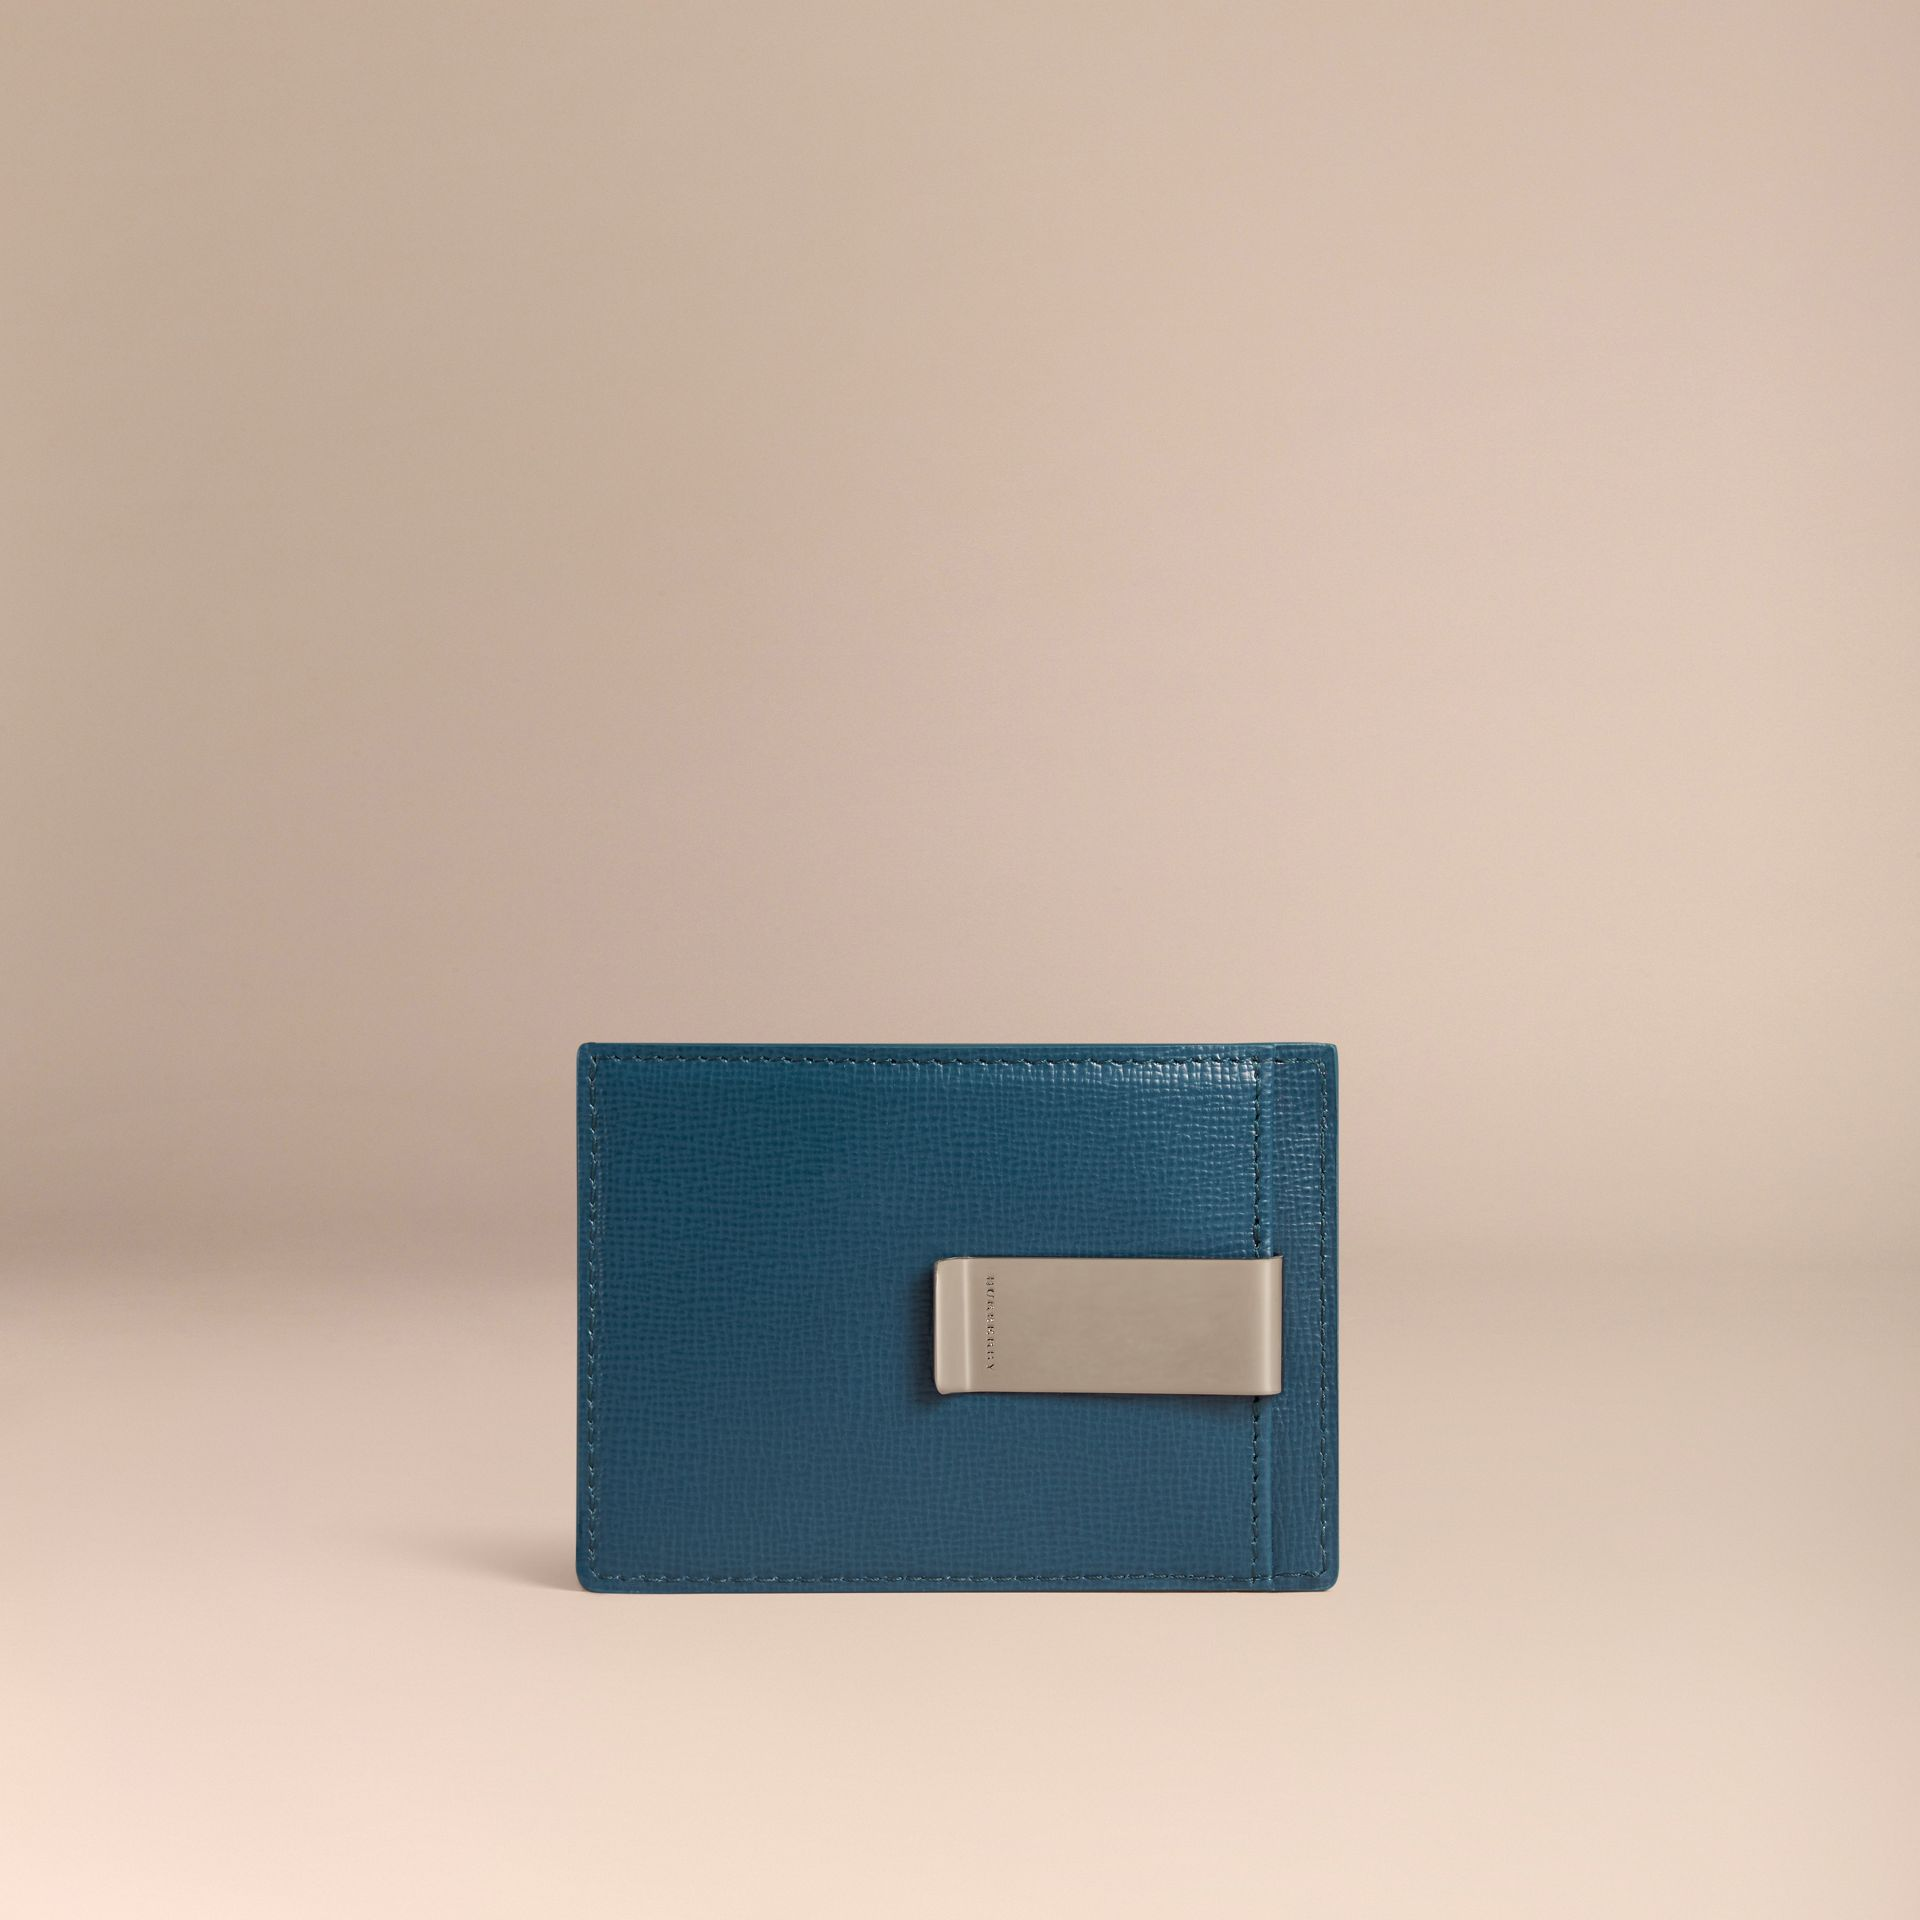 London Leather Money Clip Card Case in Mineral Blue - Men | Burberry - gallery image 2